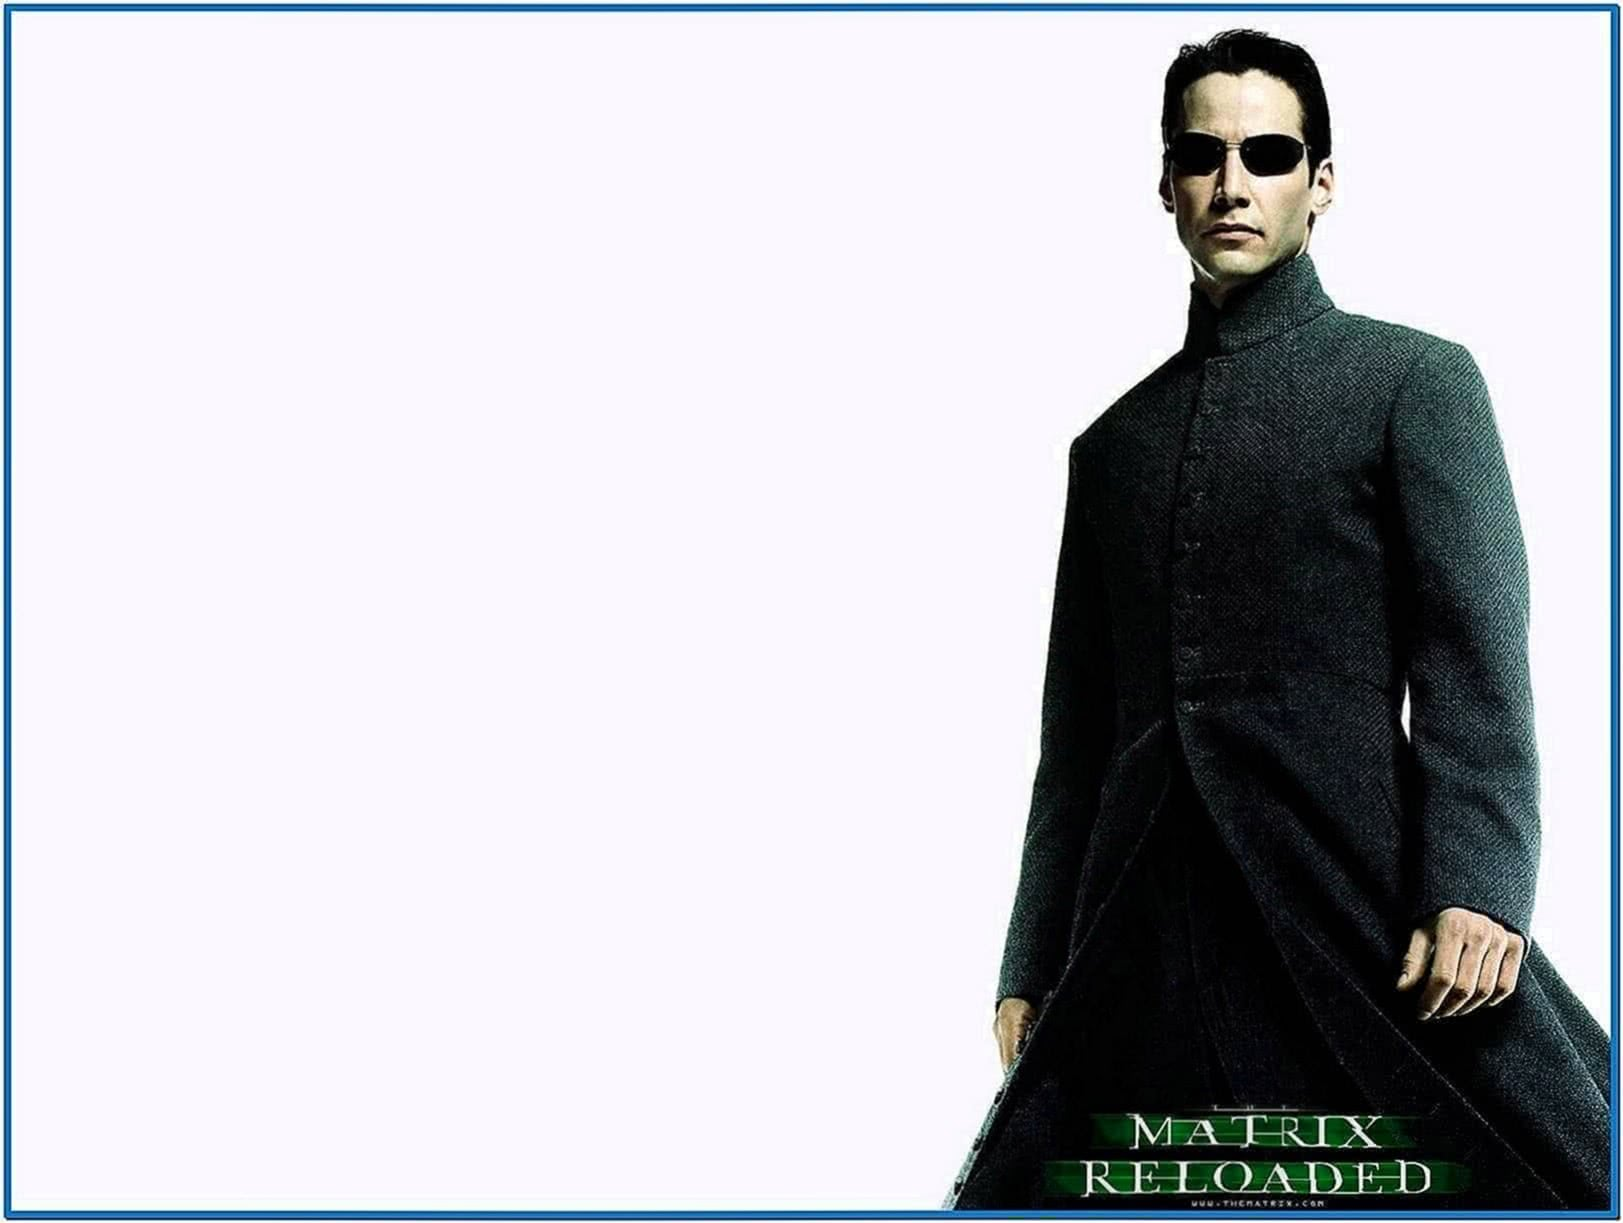 Matrix Reloaded Screensaver Mac